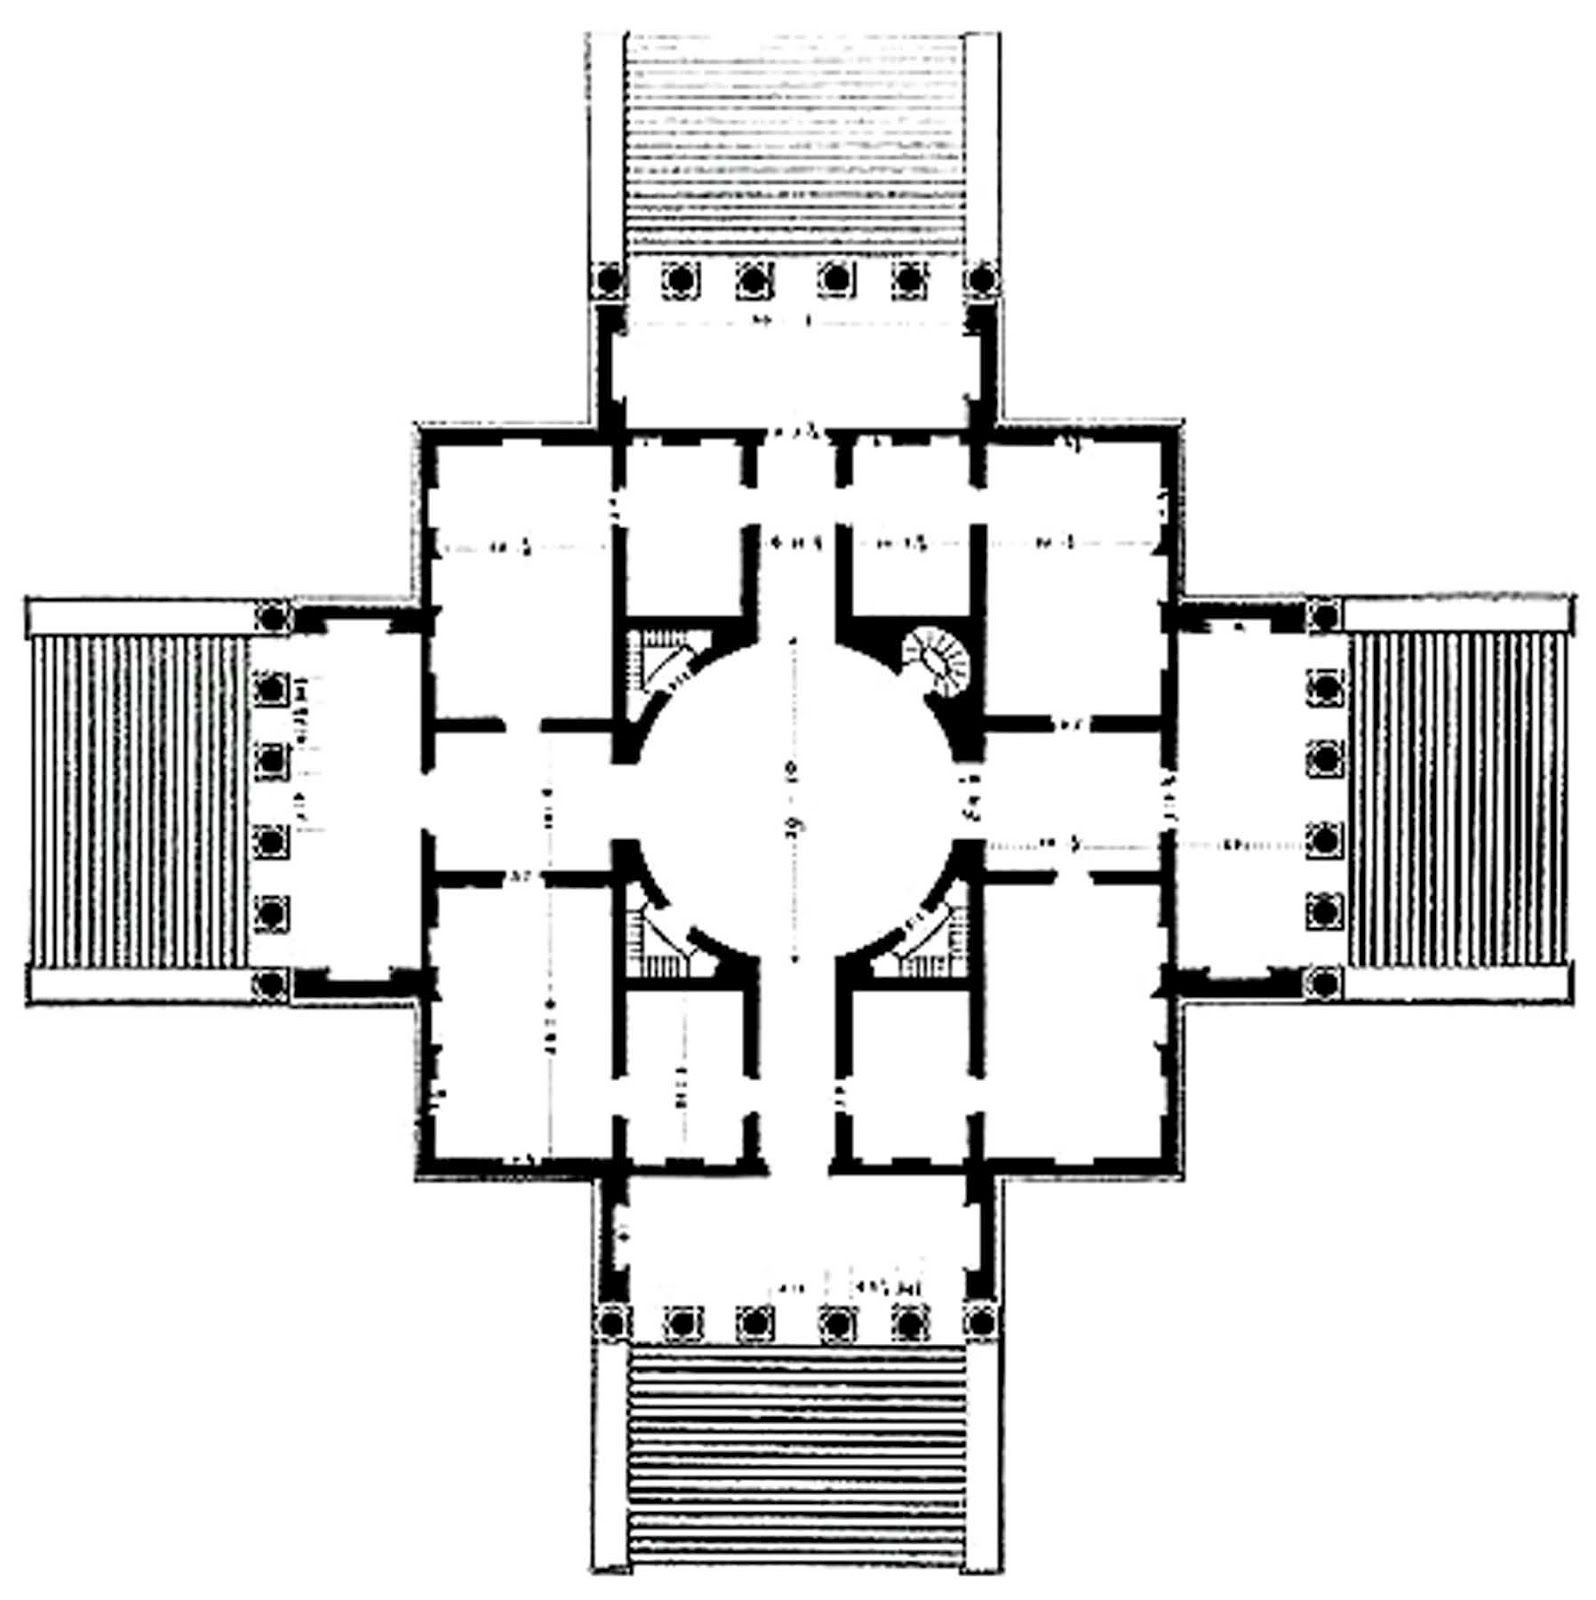 Comparison palladio rotonda plan to richard boyle for Palladian style house plans